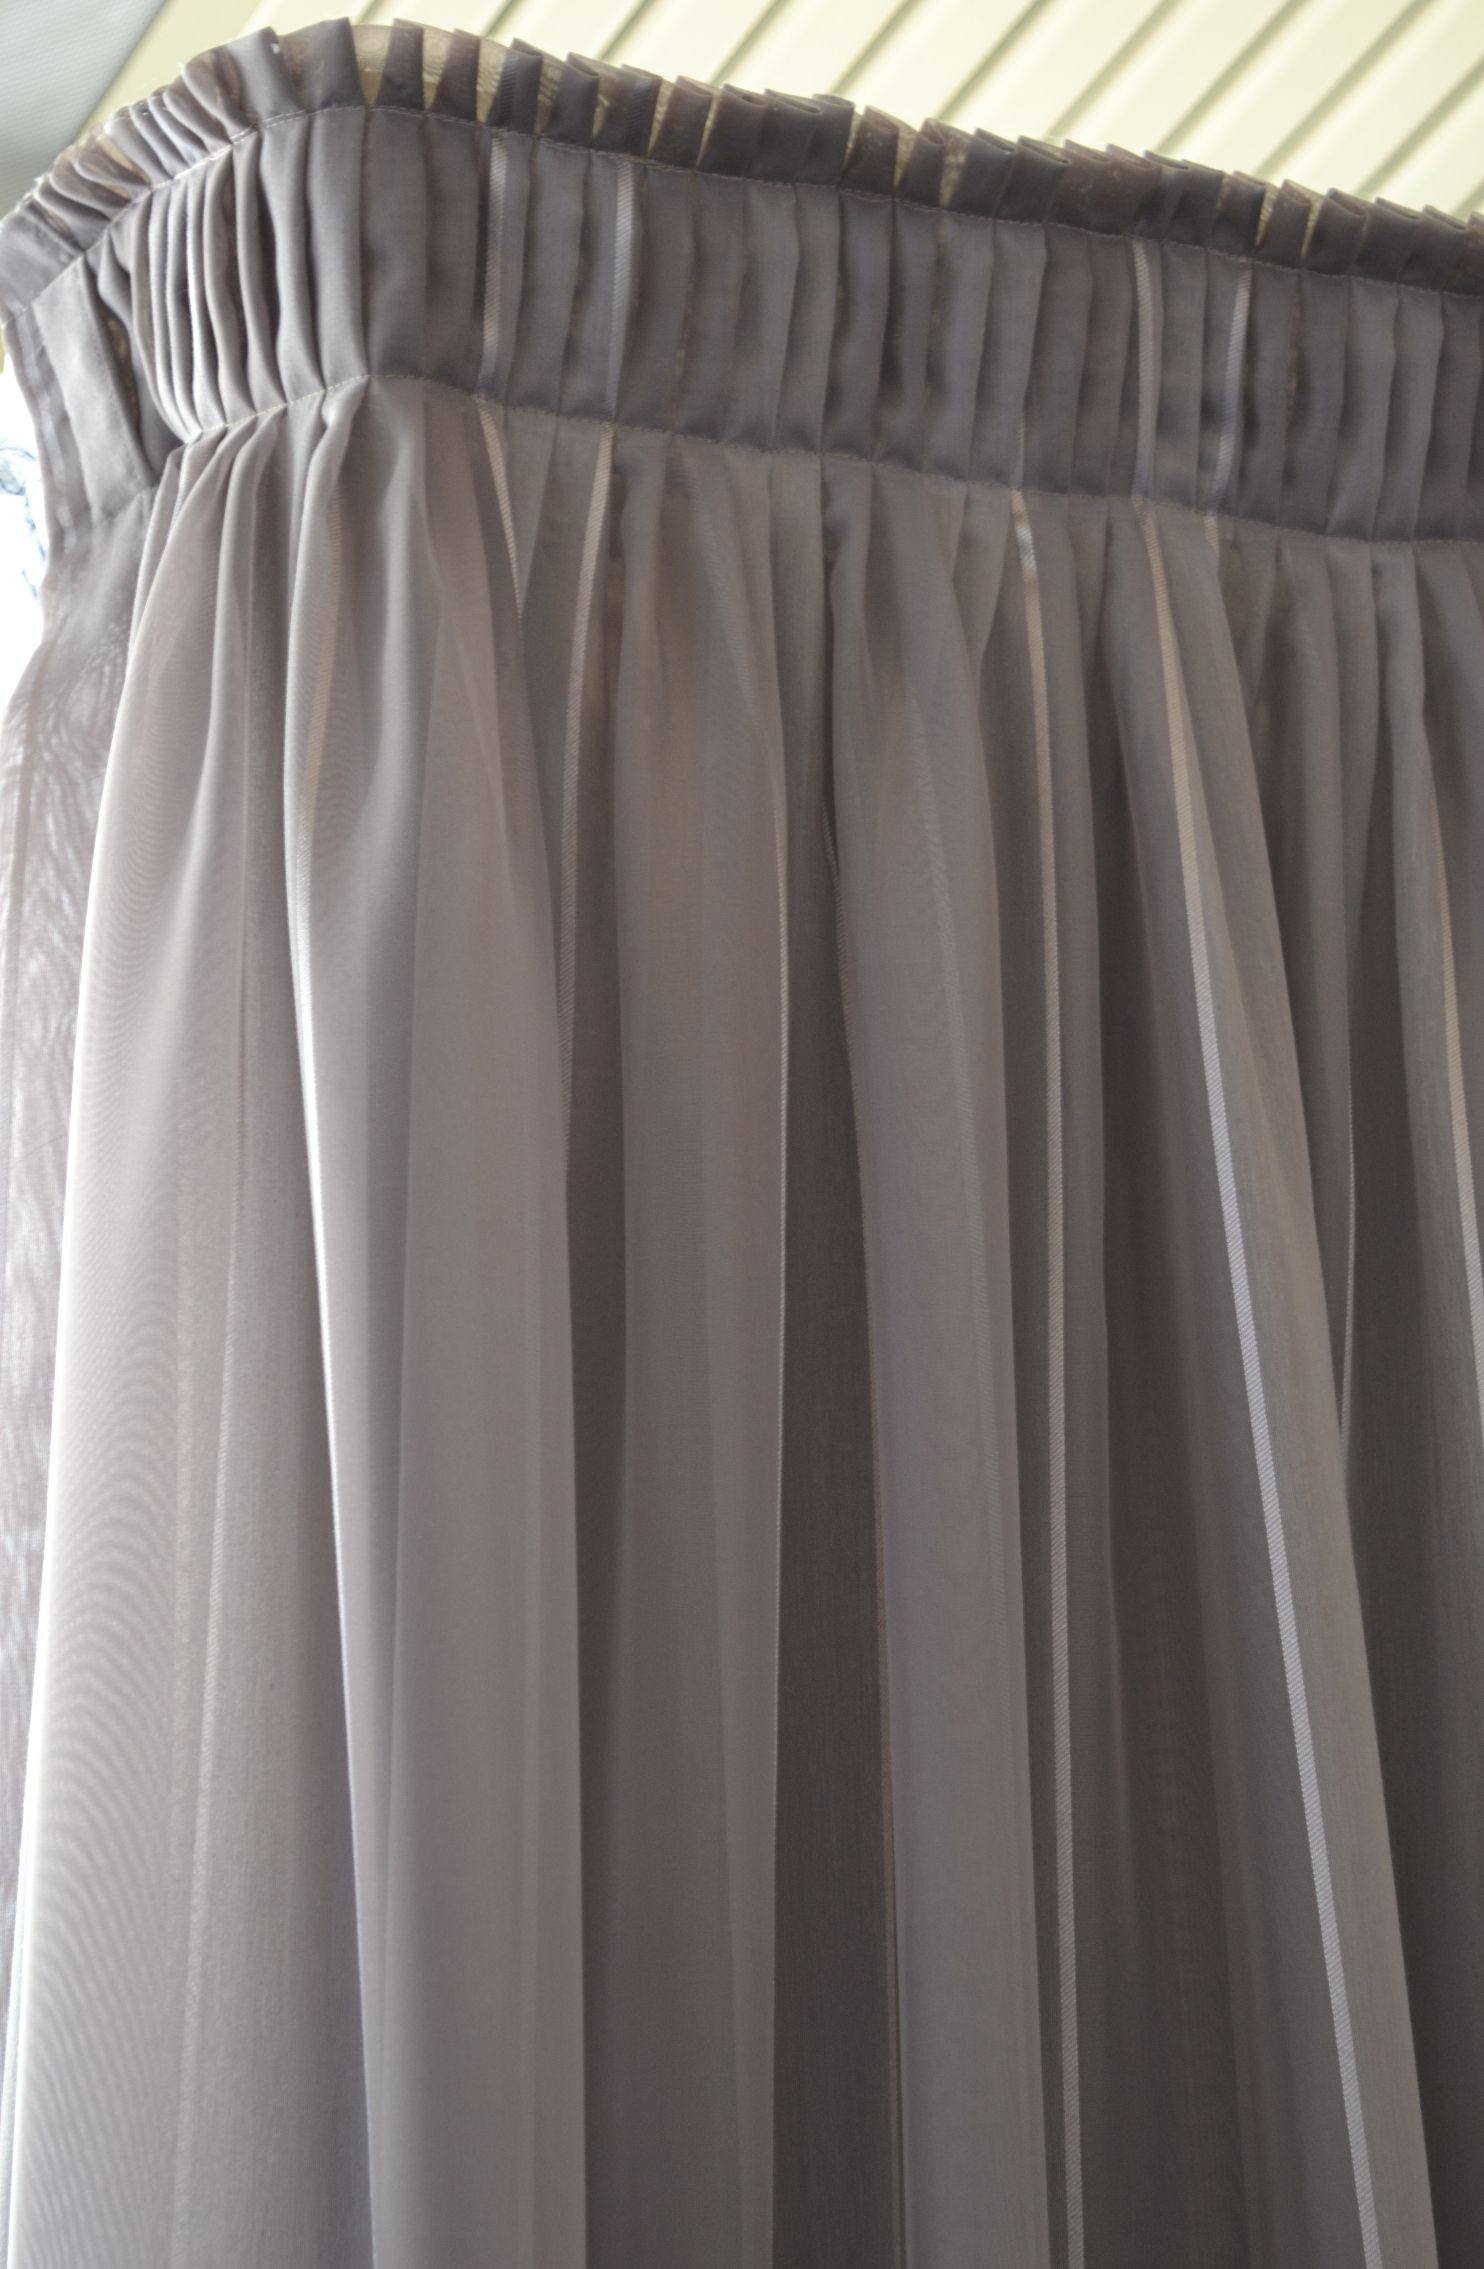 drapes curtain way decorative pleated double unforgettable one inspirations draw drapery rods of curtains traverse rod pinch type for panels